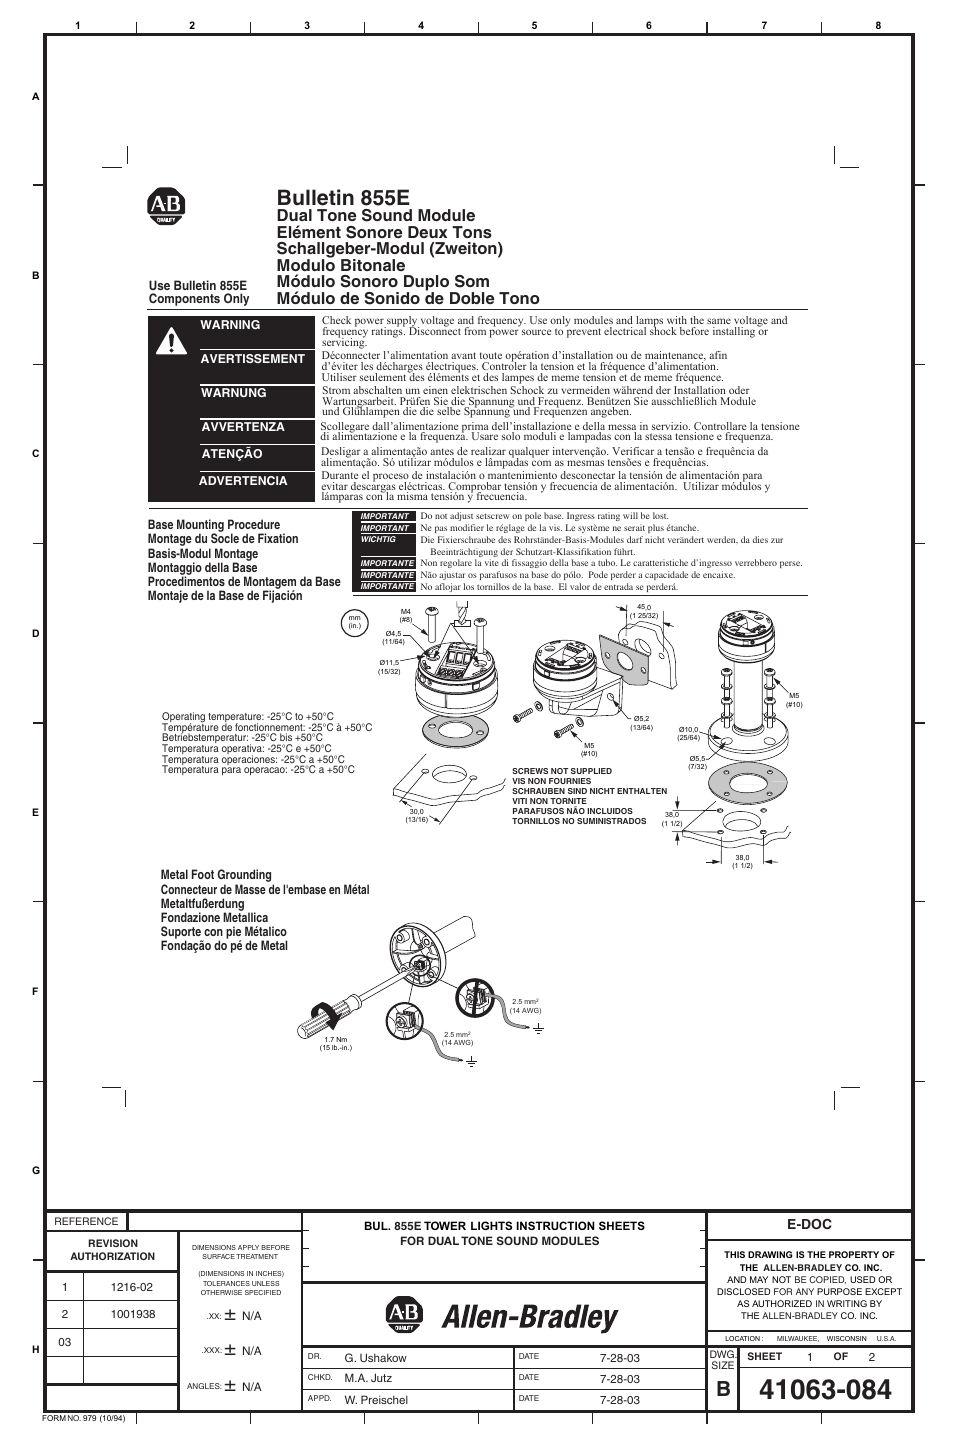 allen dley 855t bcb wiring diagram - Wiring Diagram on